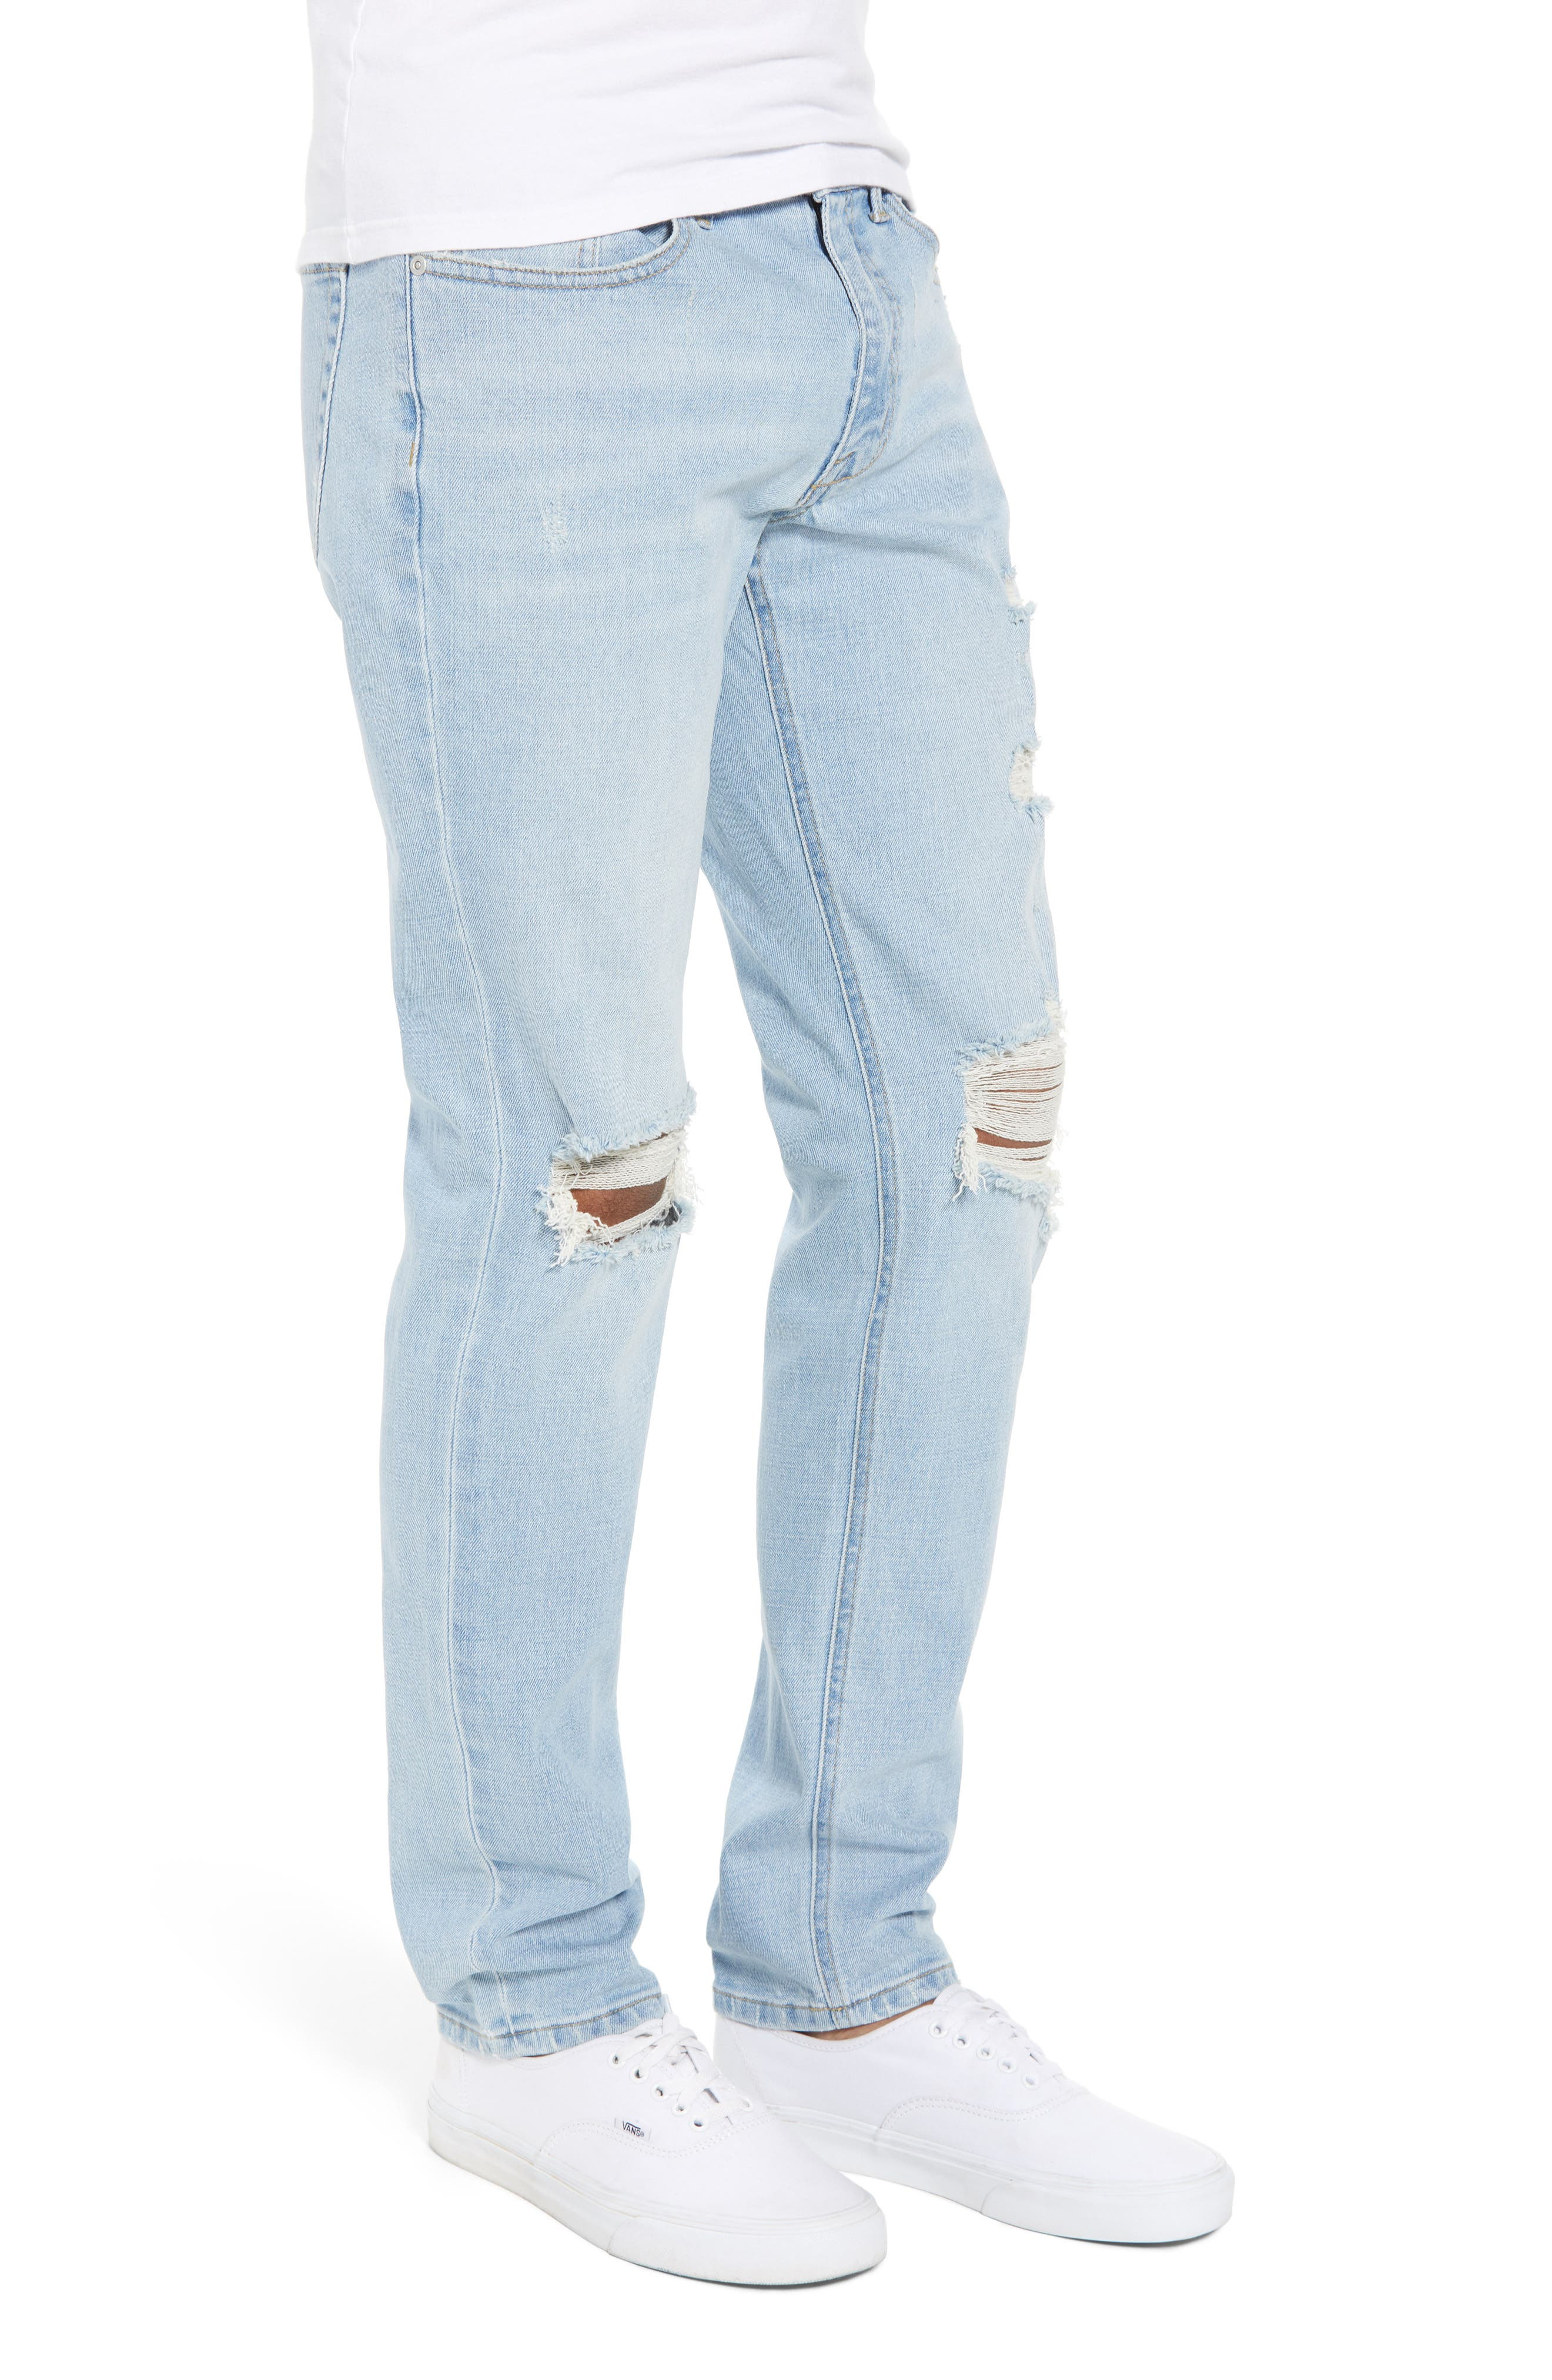 THE RAIL, Ripped Skinny Jeans, Alternate thumbnail 4, color, BLUE CORGAN WASH